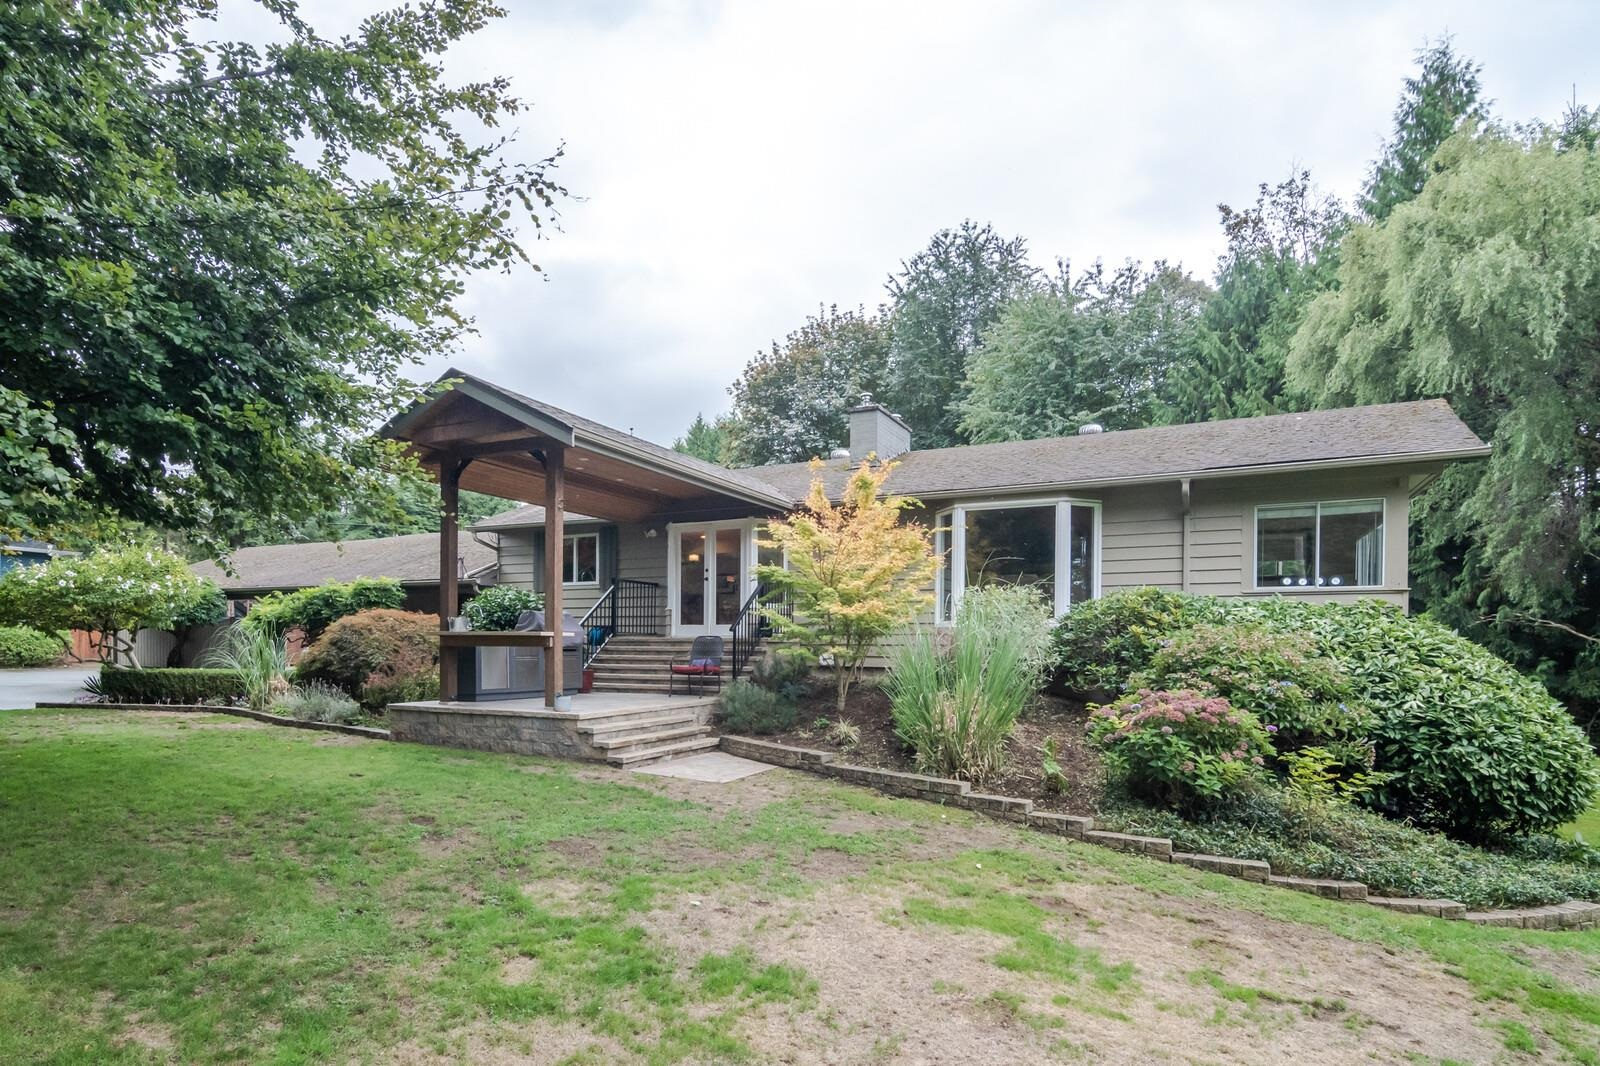 EXCEPTIONAL PARK LIKE 1.5 ACRE parcel located in premier WEST MAPLE RIDGE. LOVELY 4 bed + 3bath + 3 F.P's remodeled home highlighted with abundance of stylish features. Modern kitchen with Island, granite countertops + high-end appliances. Huge Master bedroom features 5pc ensuite + overlooks solar inground pool. A/C home, stunning yard +landscaping. 2 DETATCHED WORKHOPS (30' X 35' + 16' X 24') Greenhouse + detached RV carport located at end of lightly traveled street. Entertain in uncrowded comfort + absolute QUIET PRIVACY. BUILDERS + INVERTORS TAKE NOTE: REZONING taking place for 4 LARGE RS!B CUL-DE-SAC LOTS. PICTURESQUE PRIVACY.